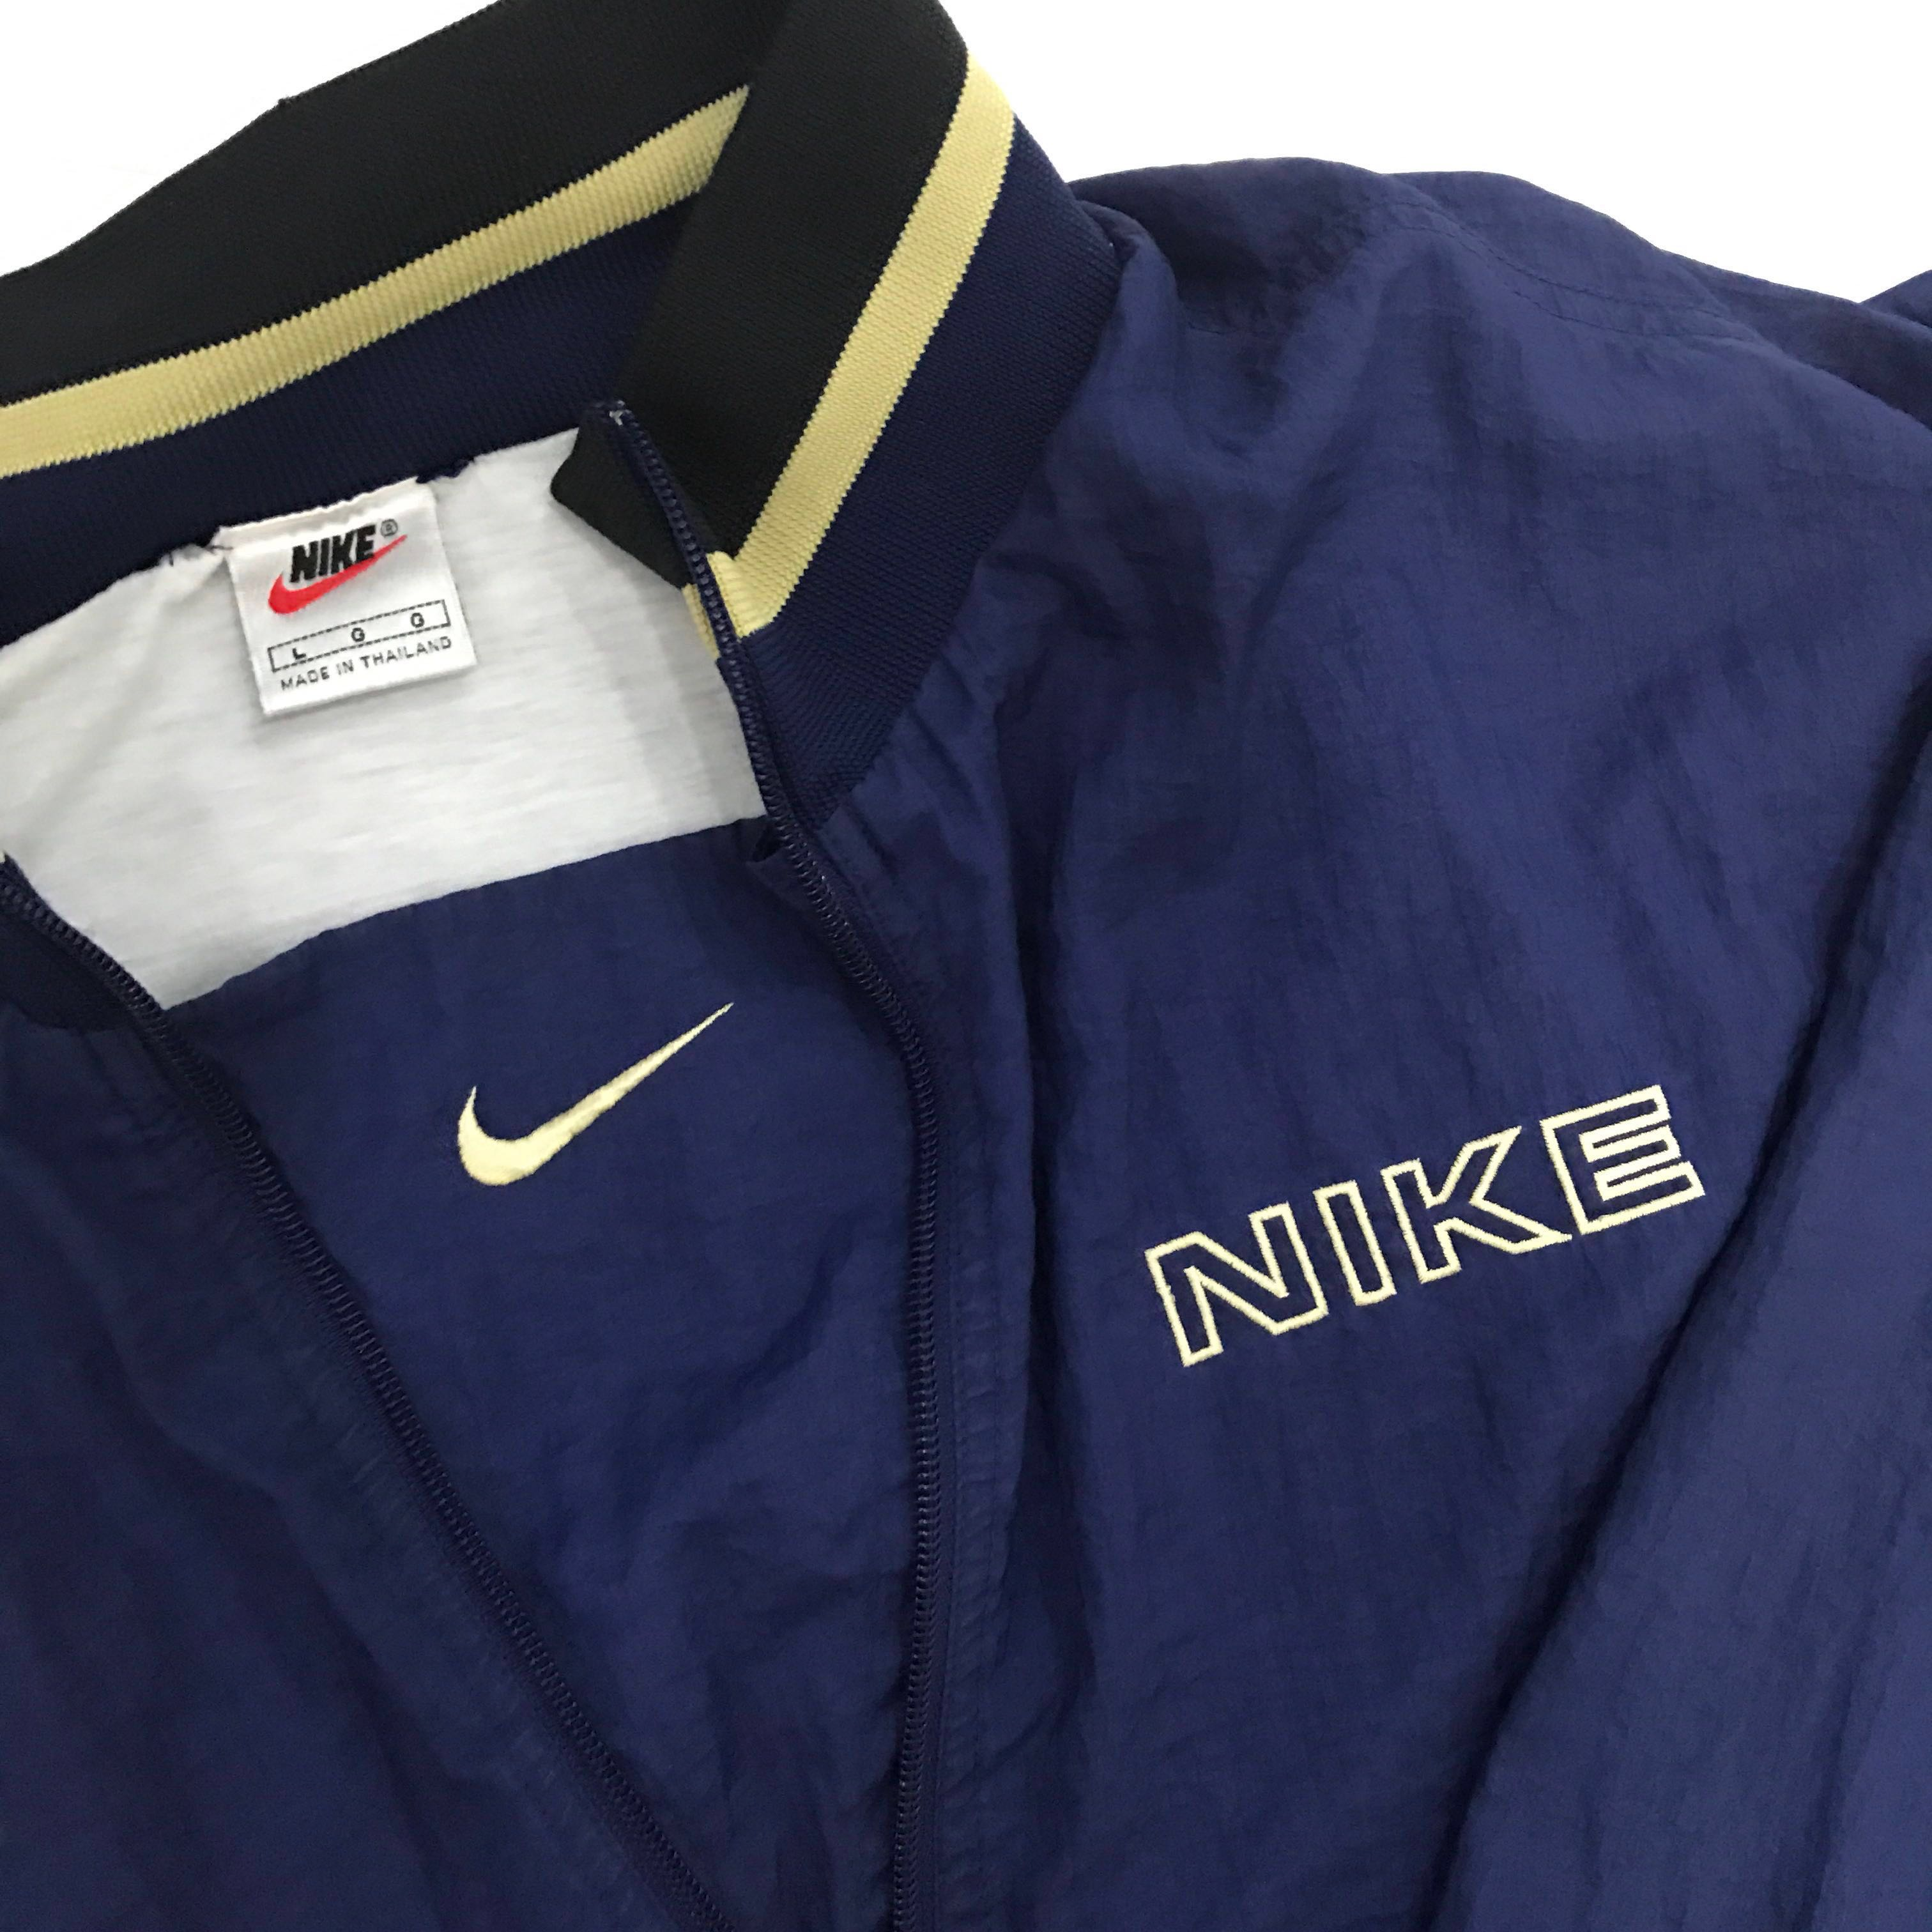 16280a5a vintage nike half zip windbreaker, Men's Fashion, Clothes, Outerwear on  Carousell